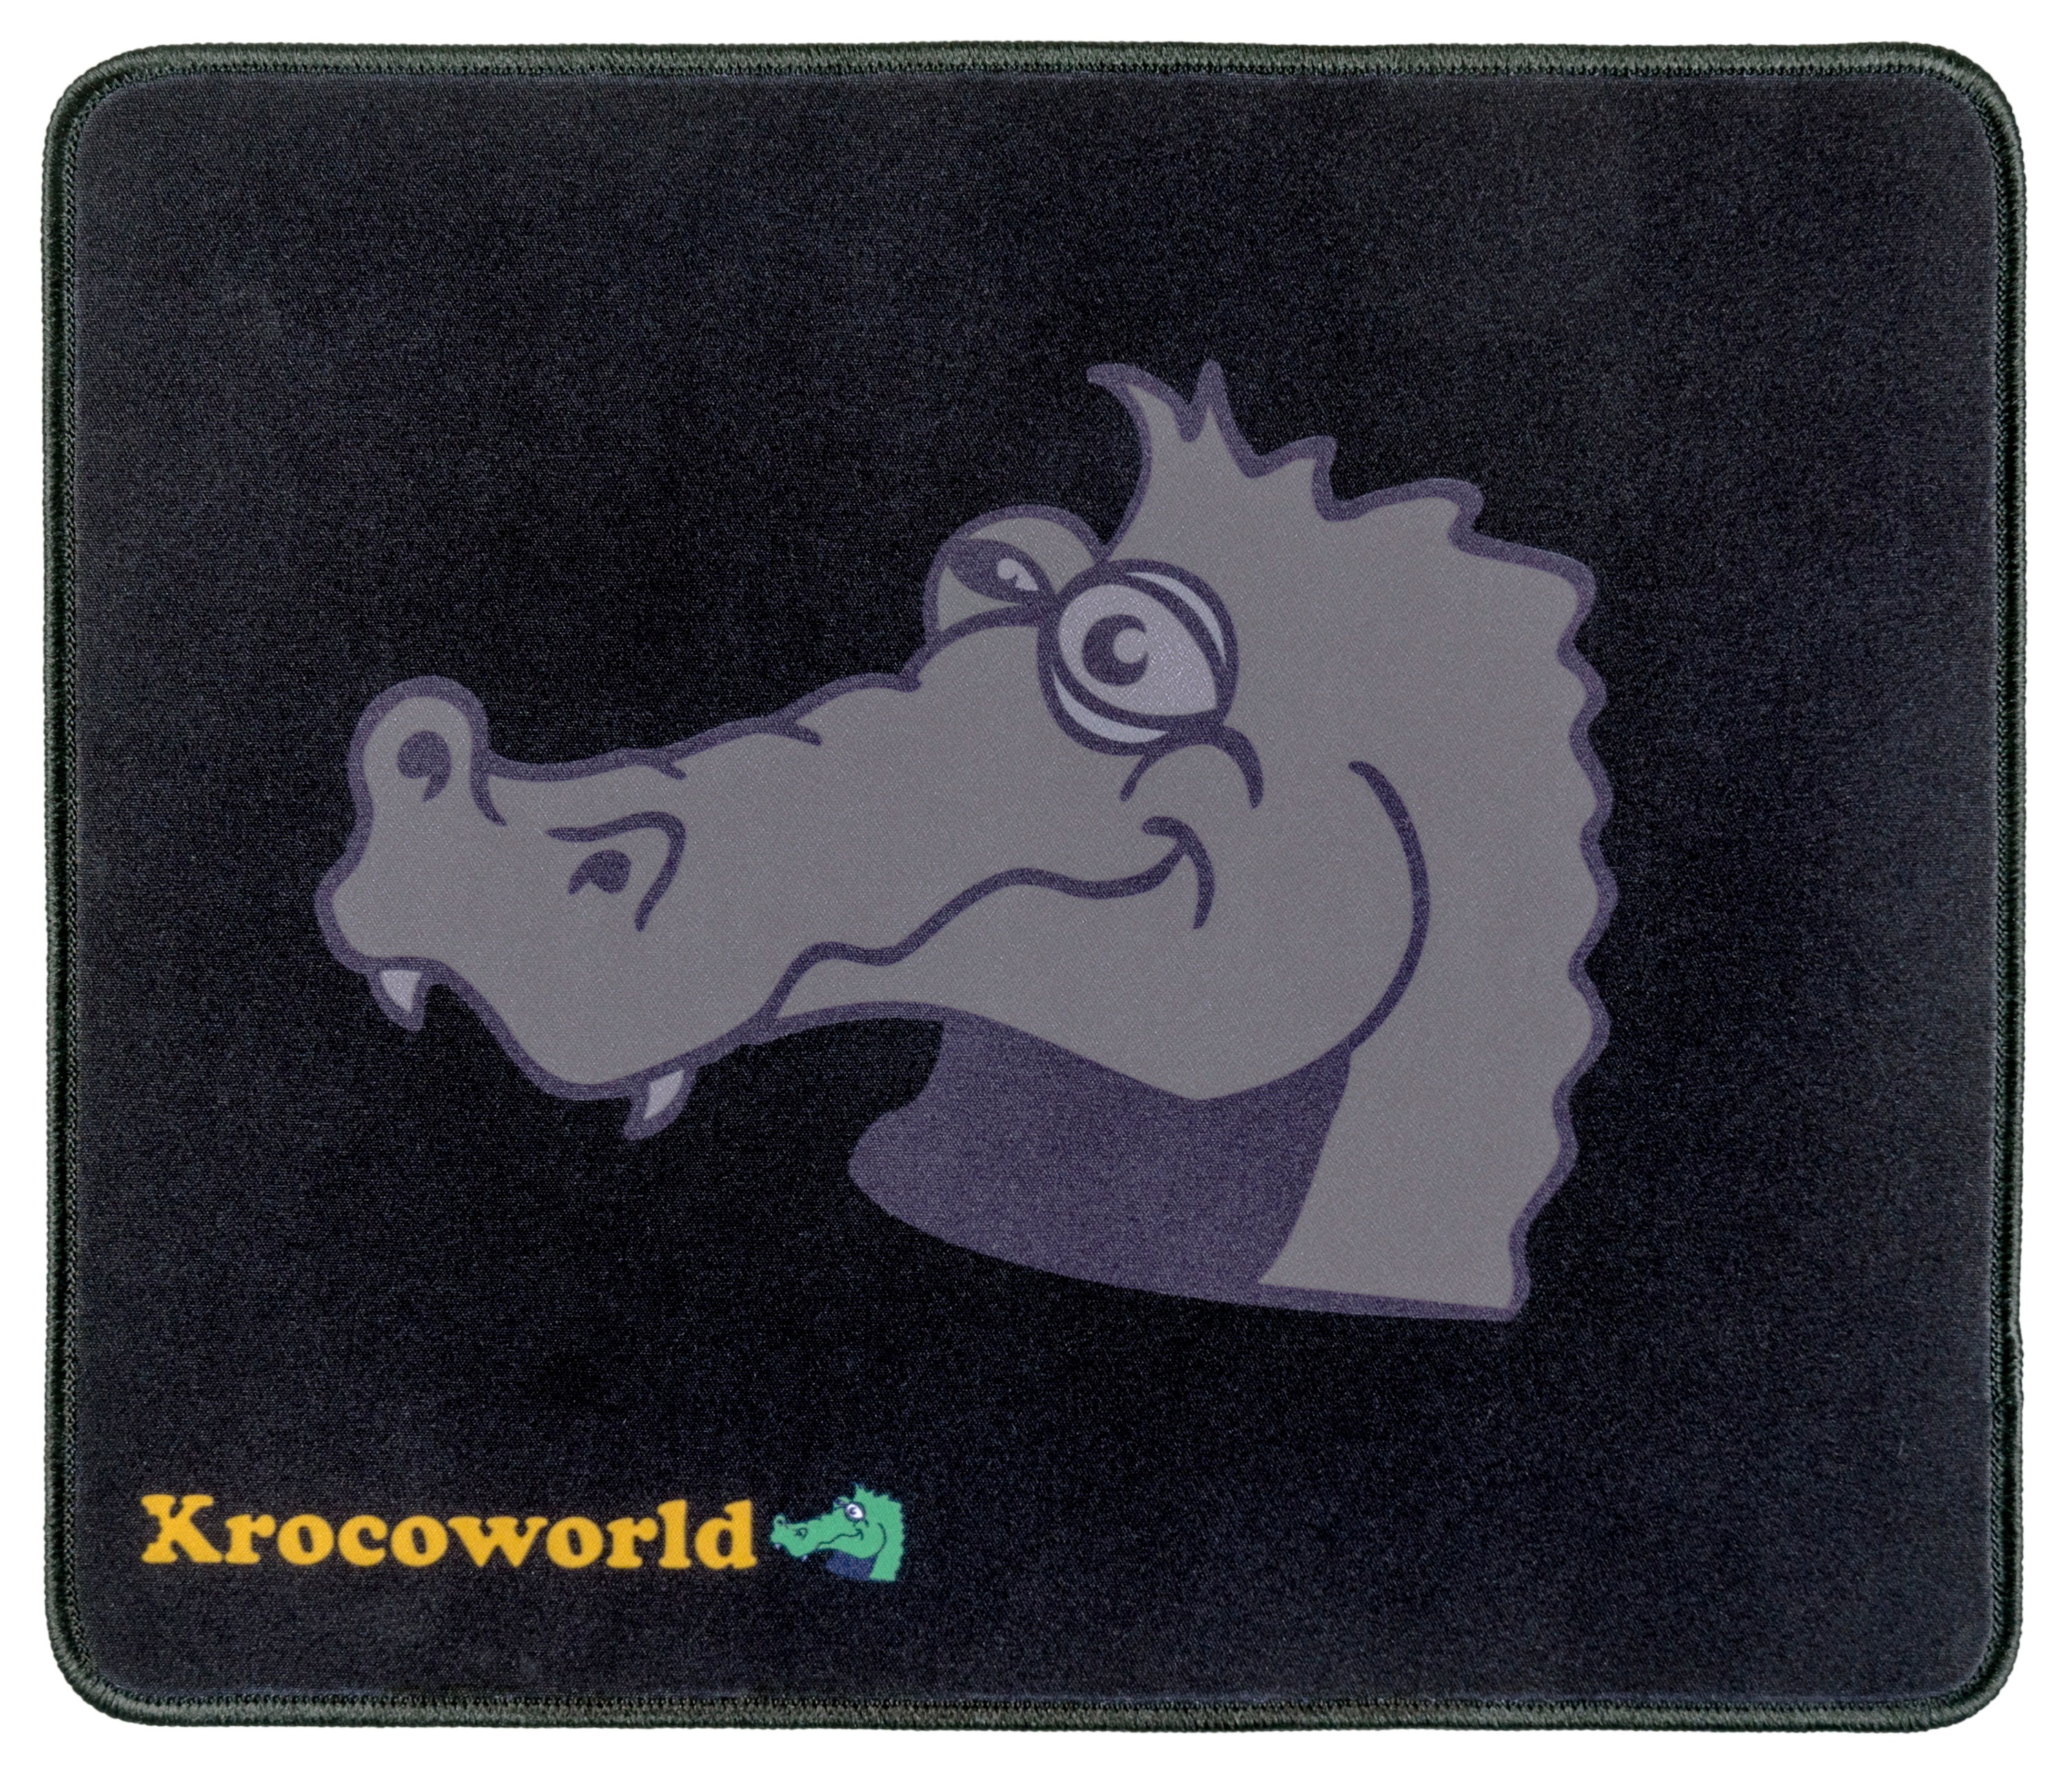 Mauspad The Krocoworld Design Sleeve